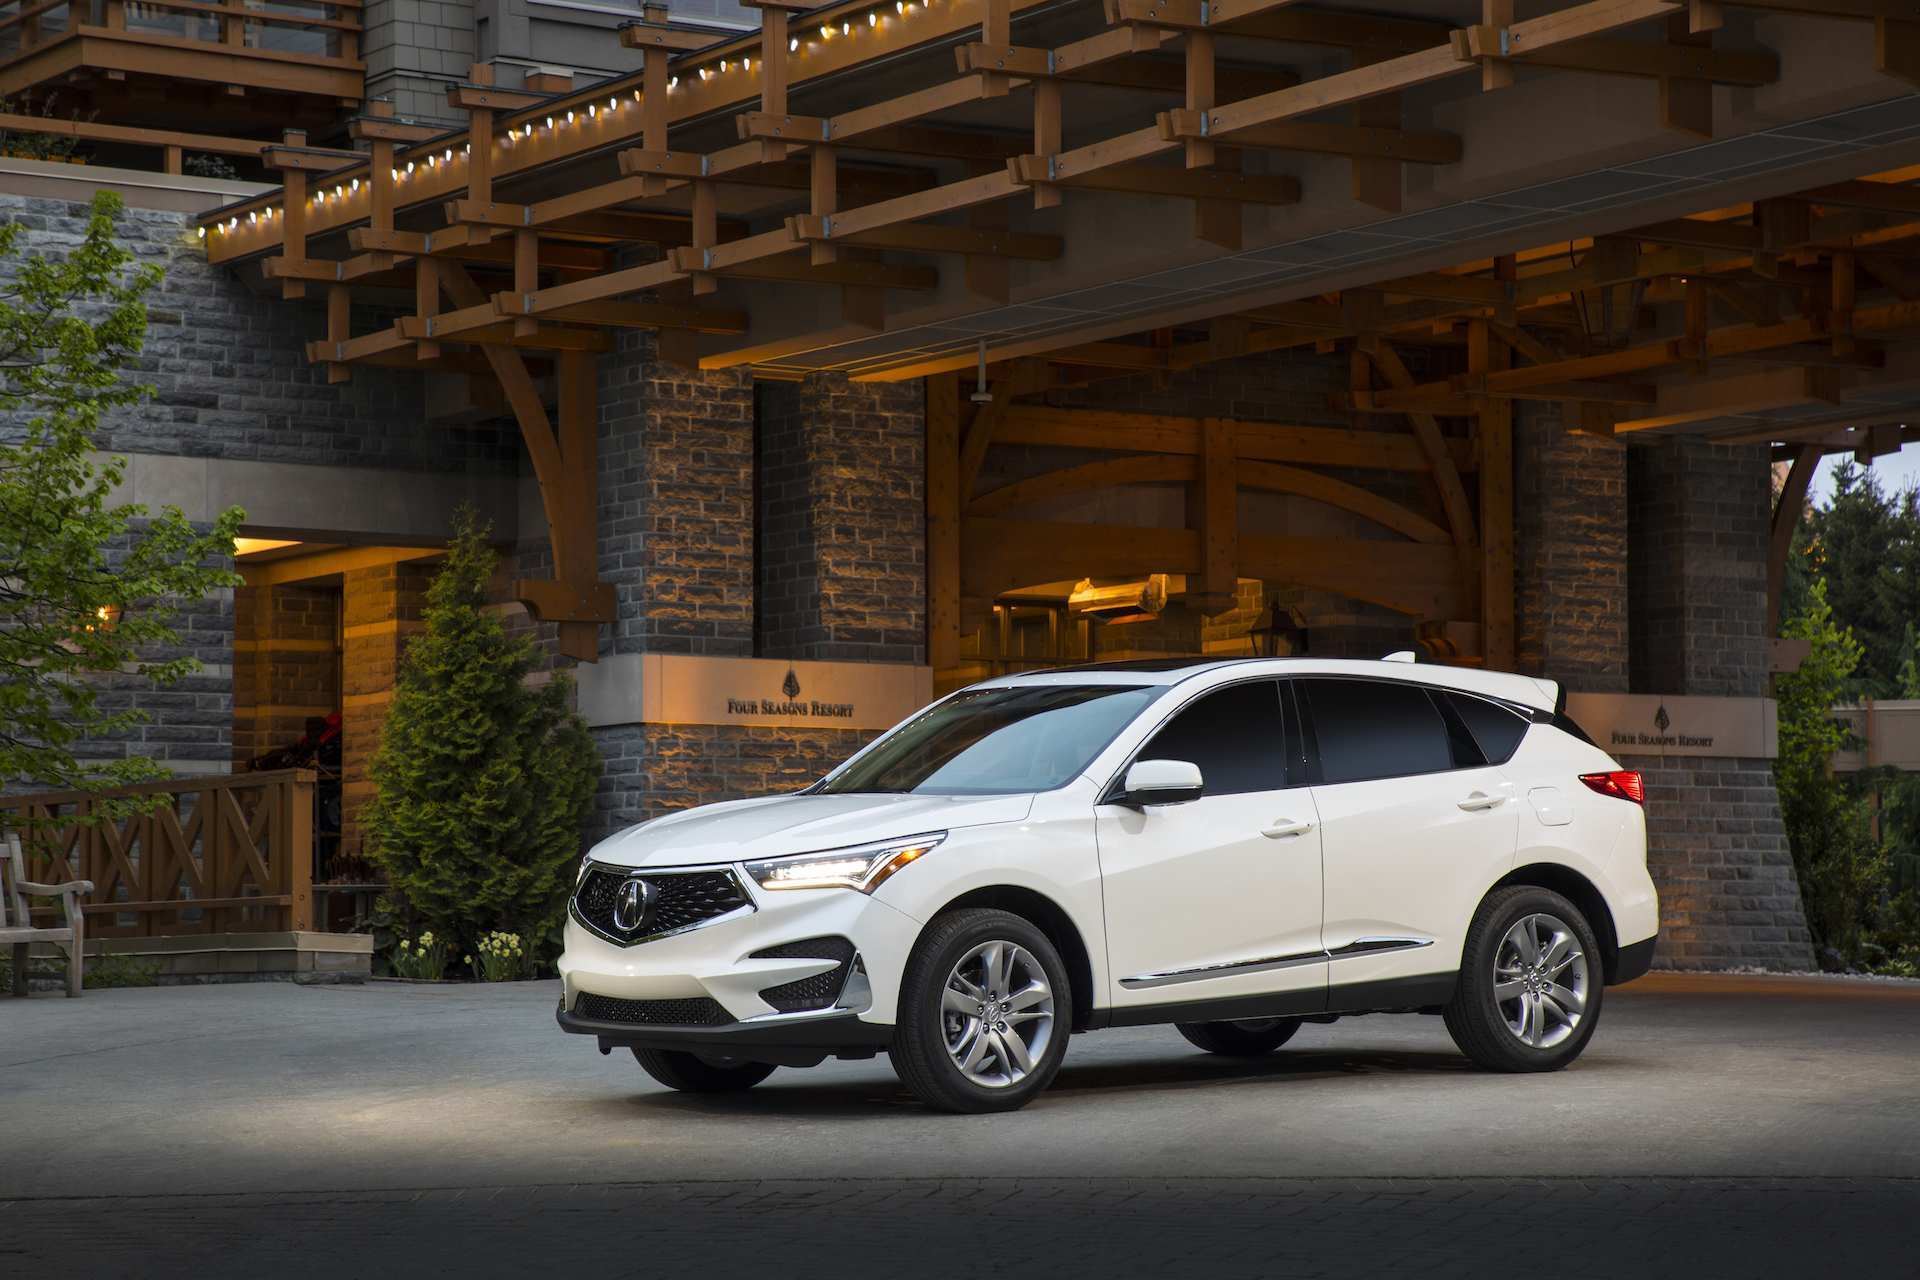 42 Gallery of Acura Rdx 2020 Review Redesign for Acura Rdx 2020 Review